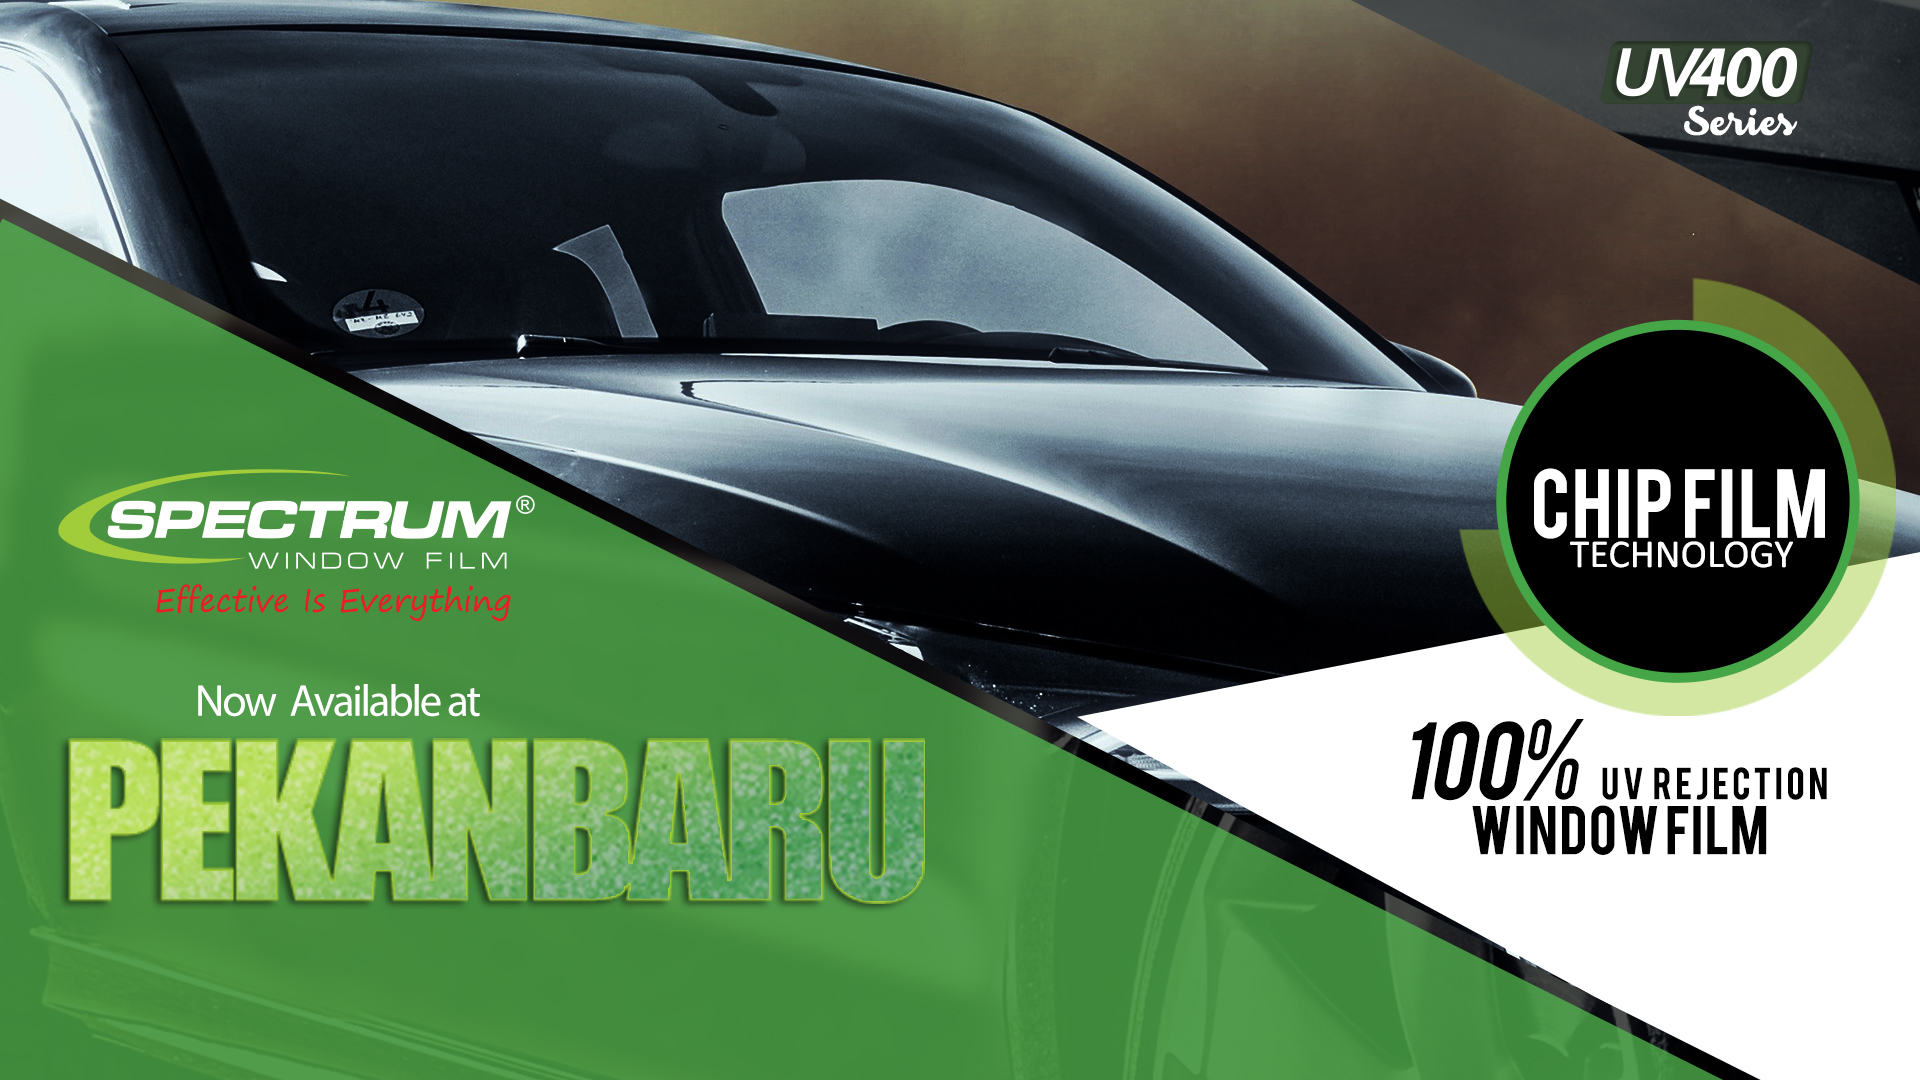 Now available! UV400 series dari Spectrum Window Film